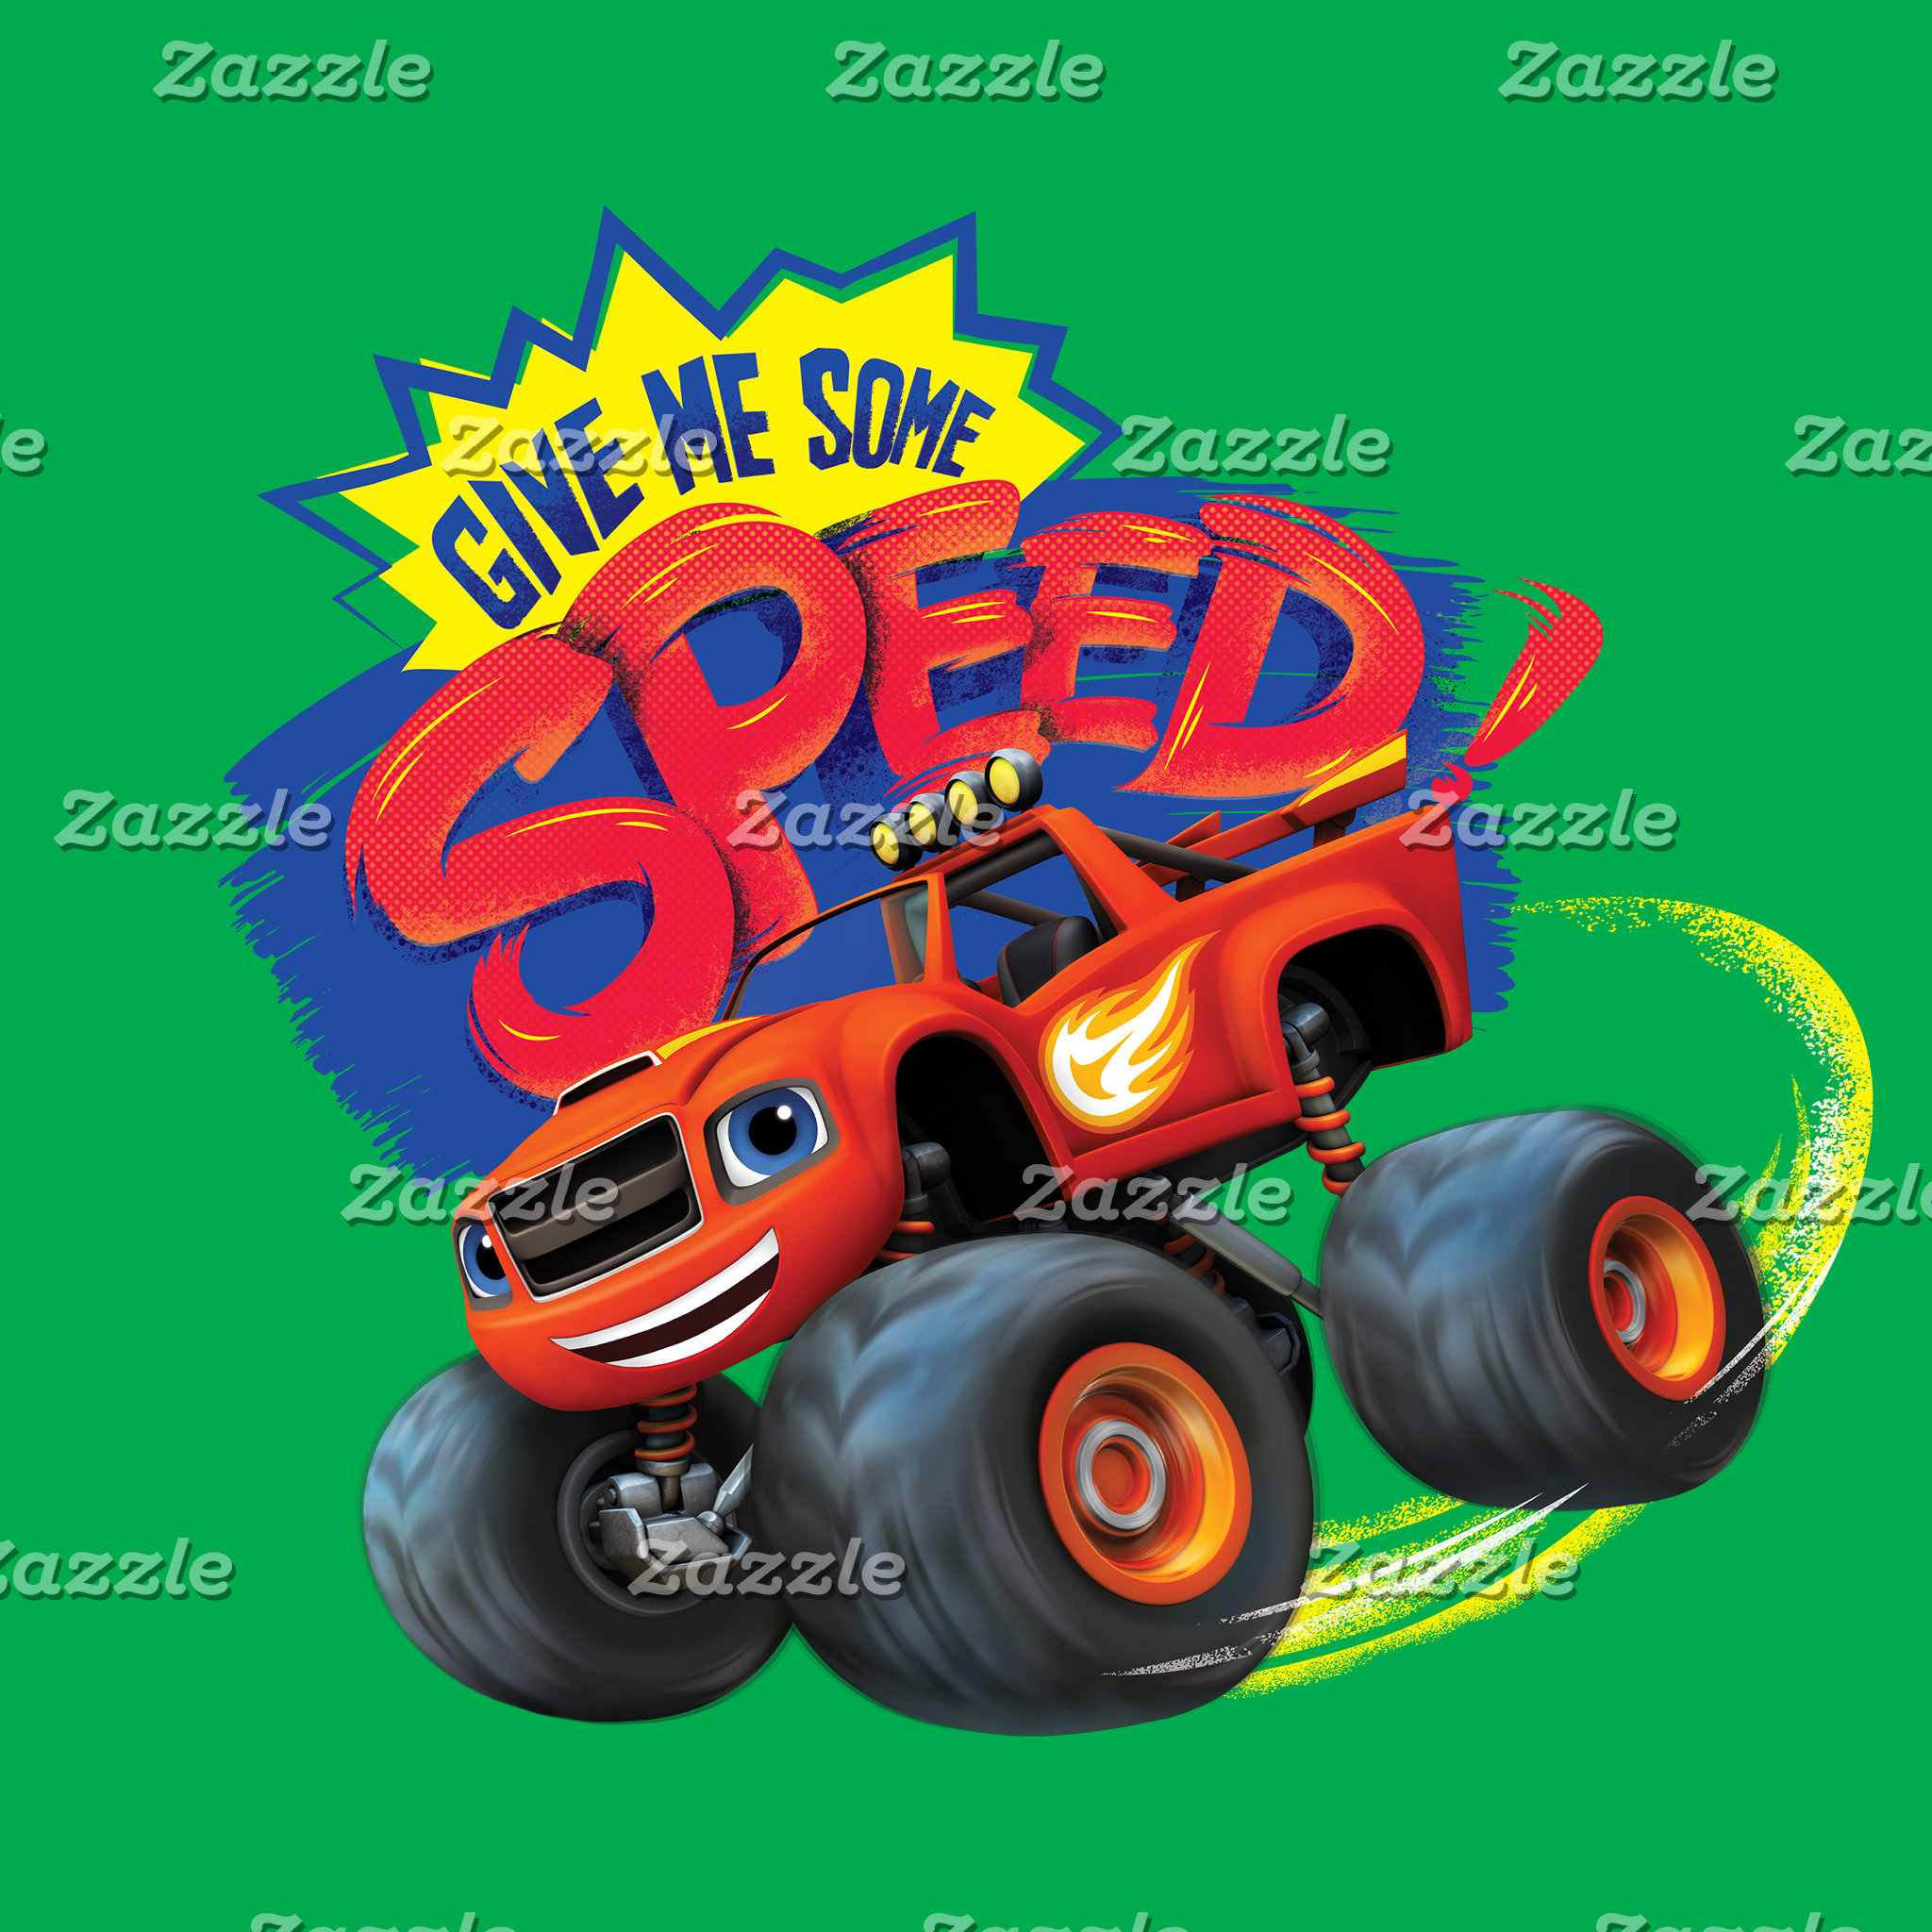 Give Me Some Speed